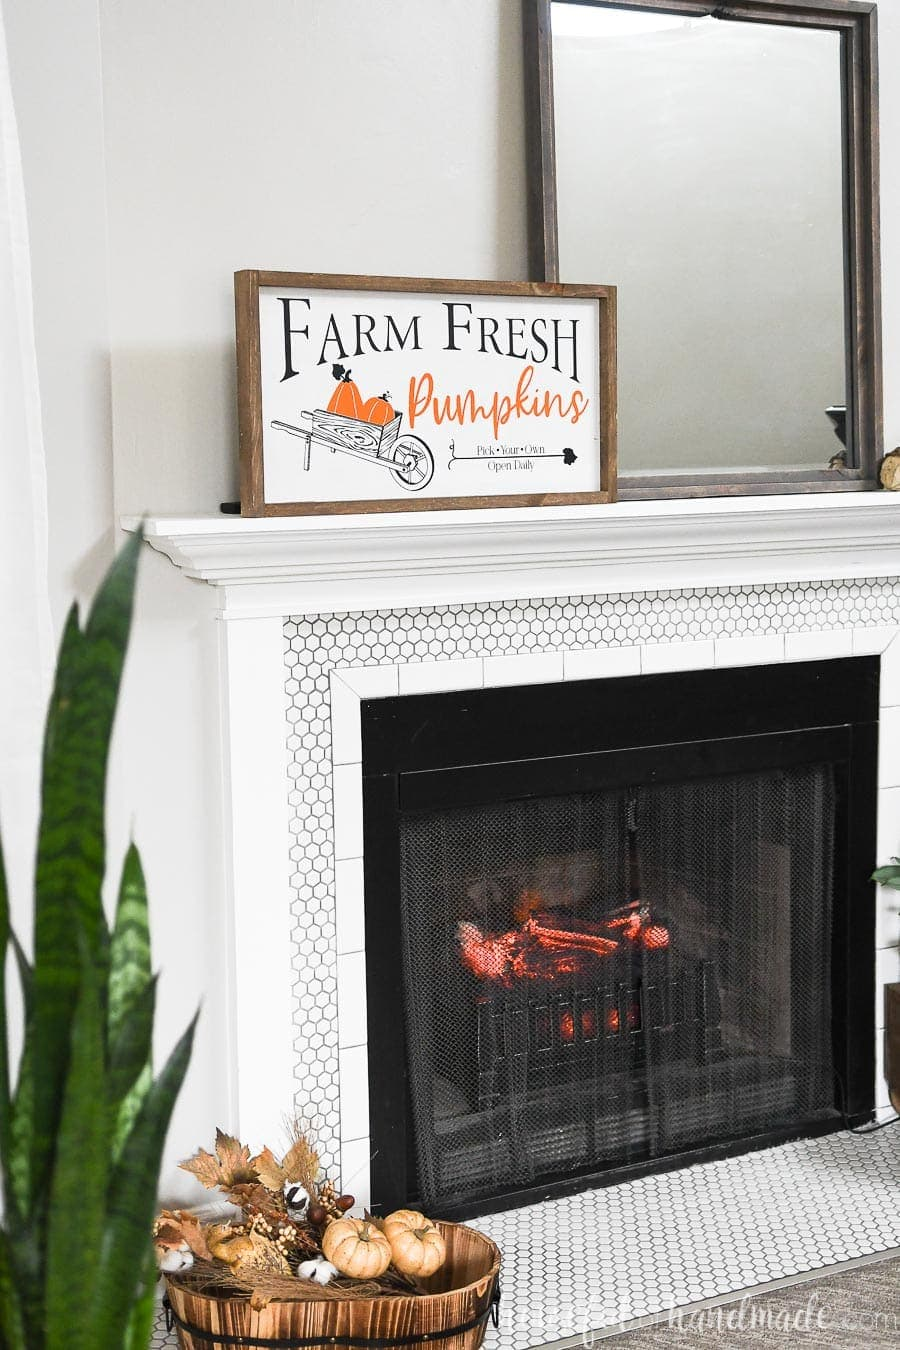 Angled view of a mantel decorated for fall with a fall wood sign and snake plant in the foreground.